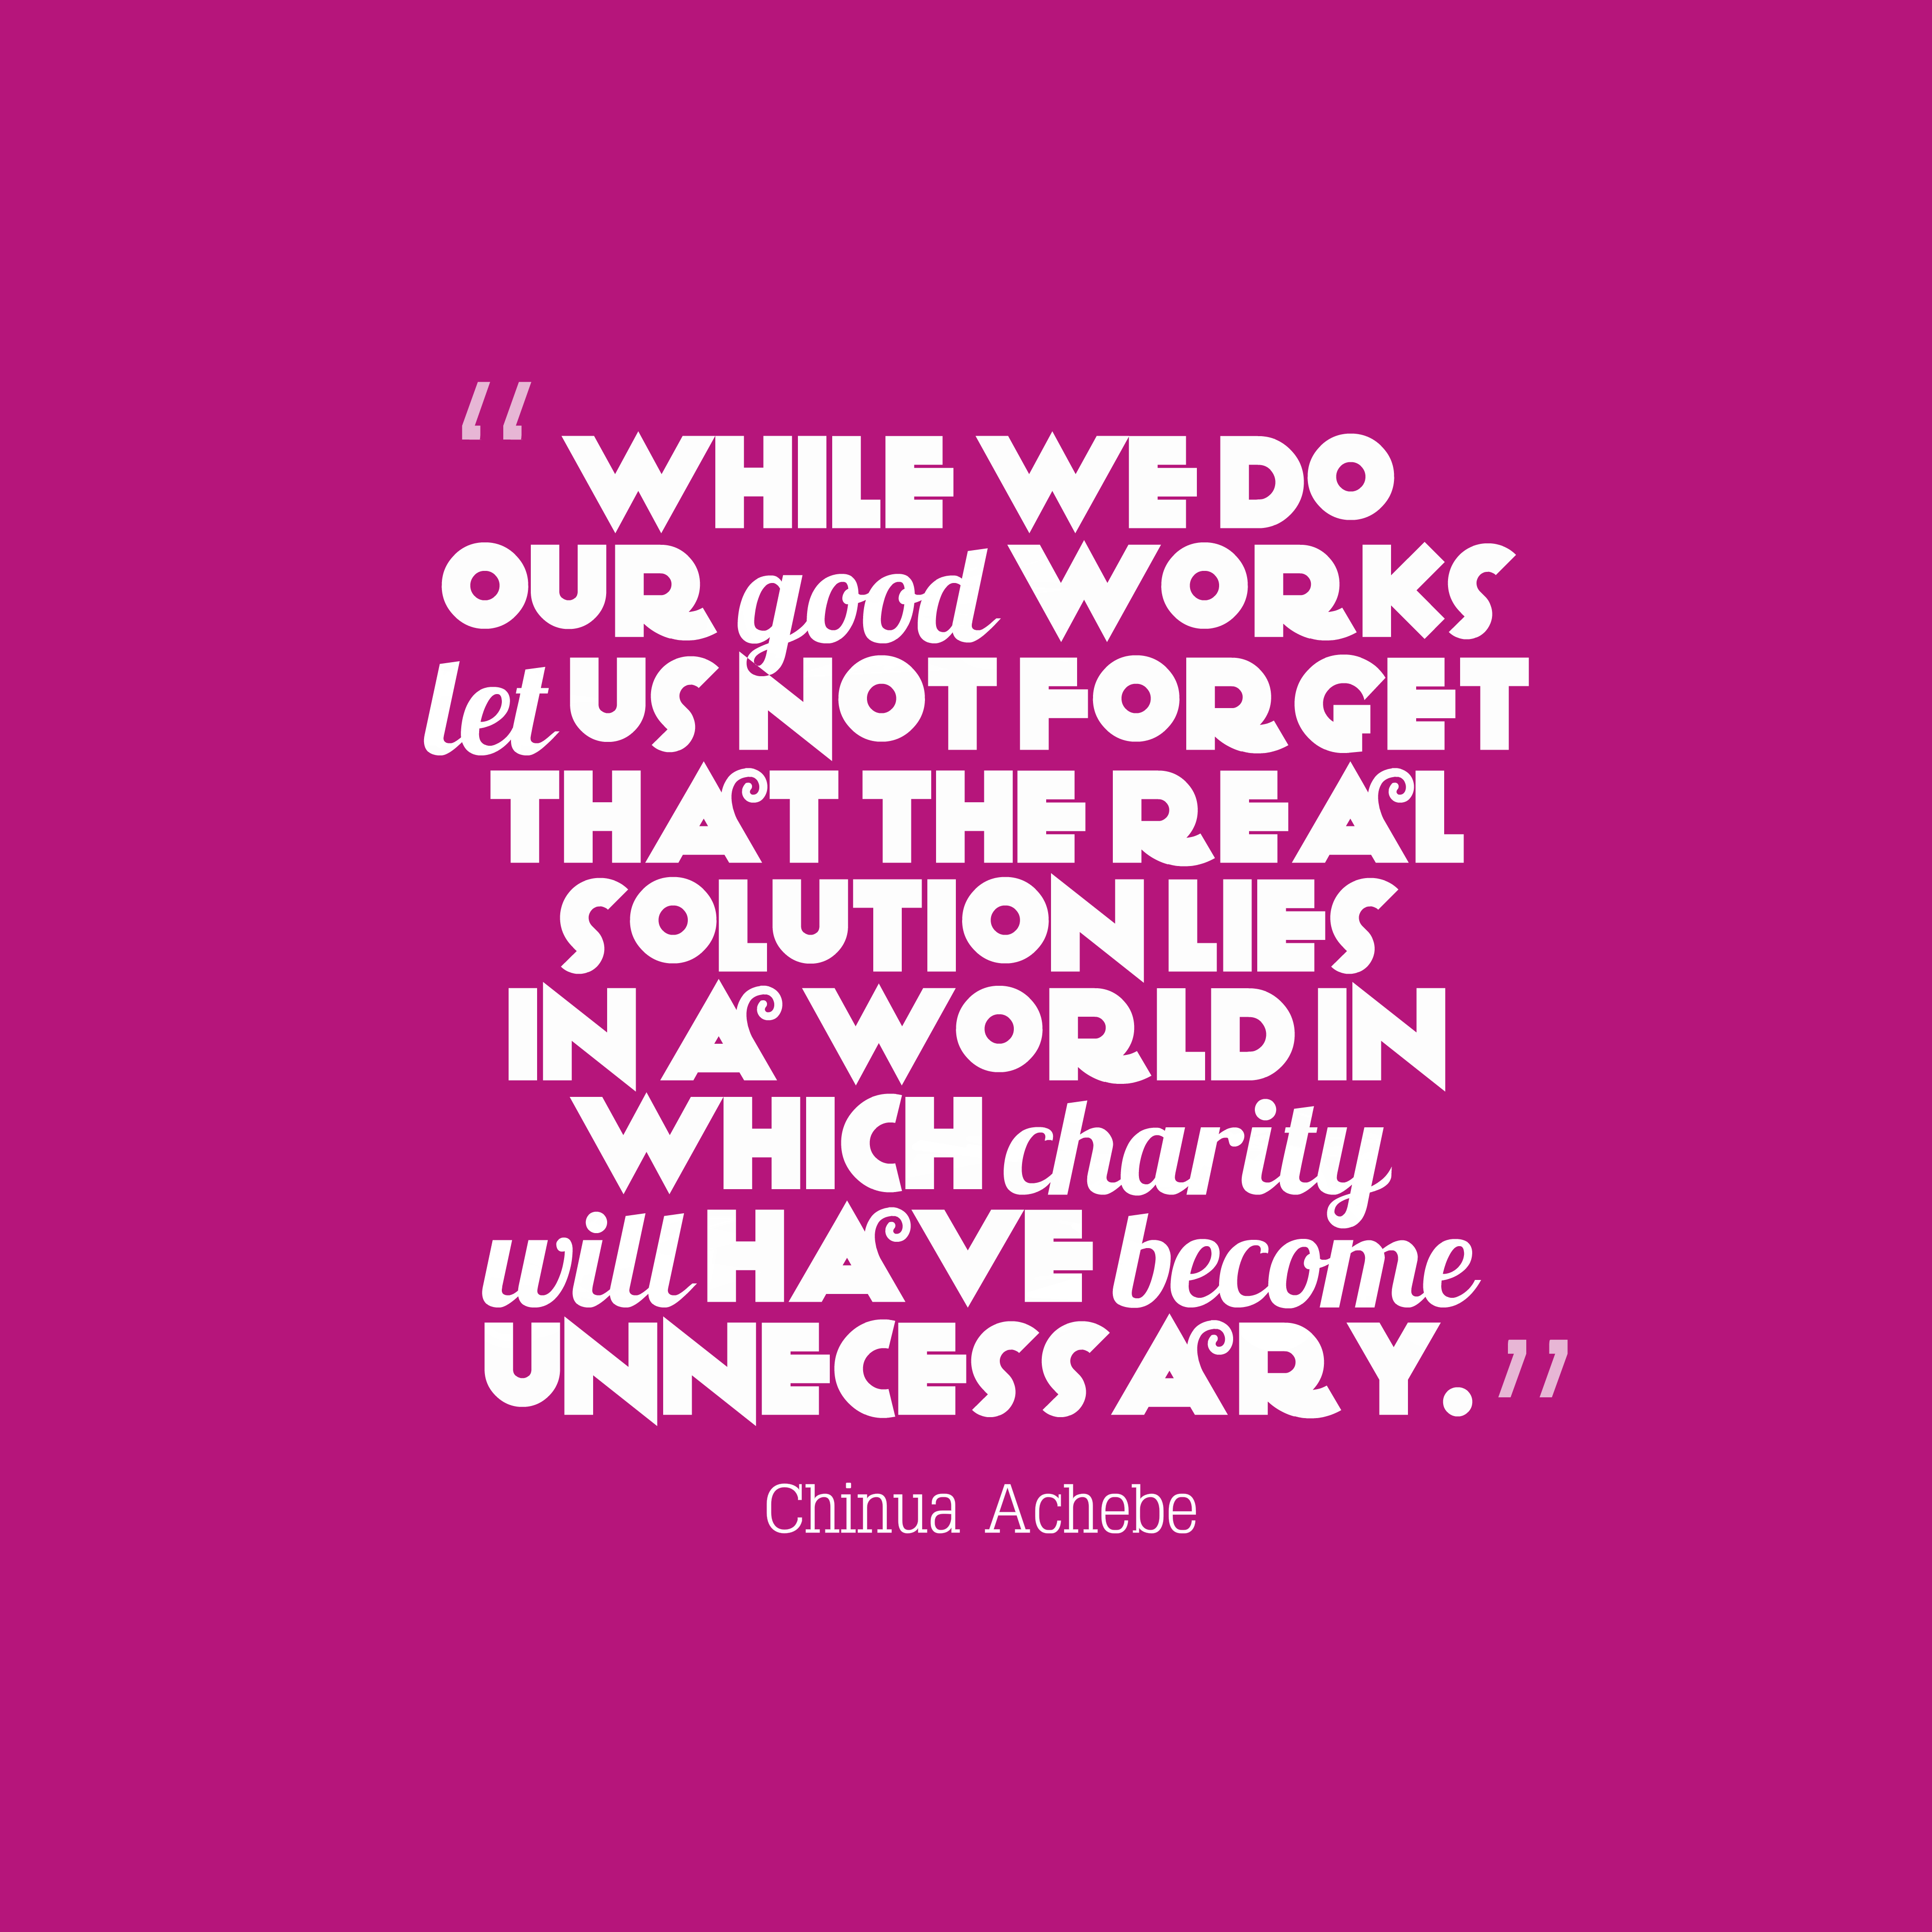 Best Charity Quotes: Chinua Achebe Quote About Charity